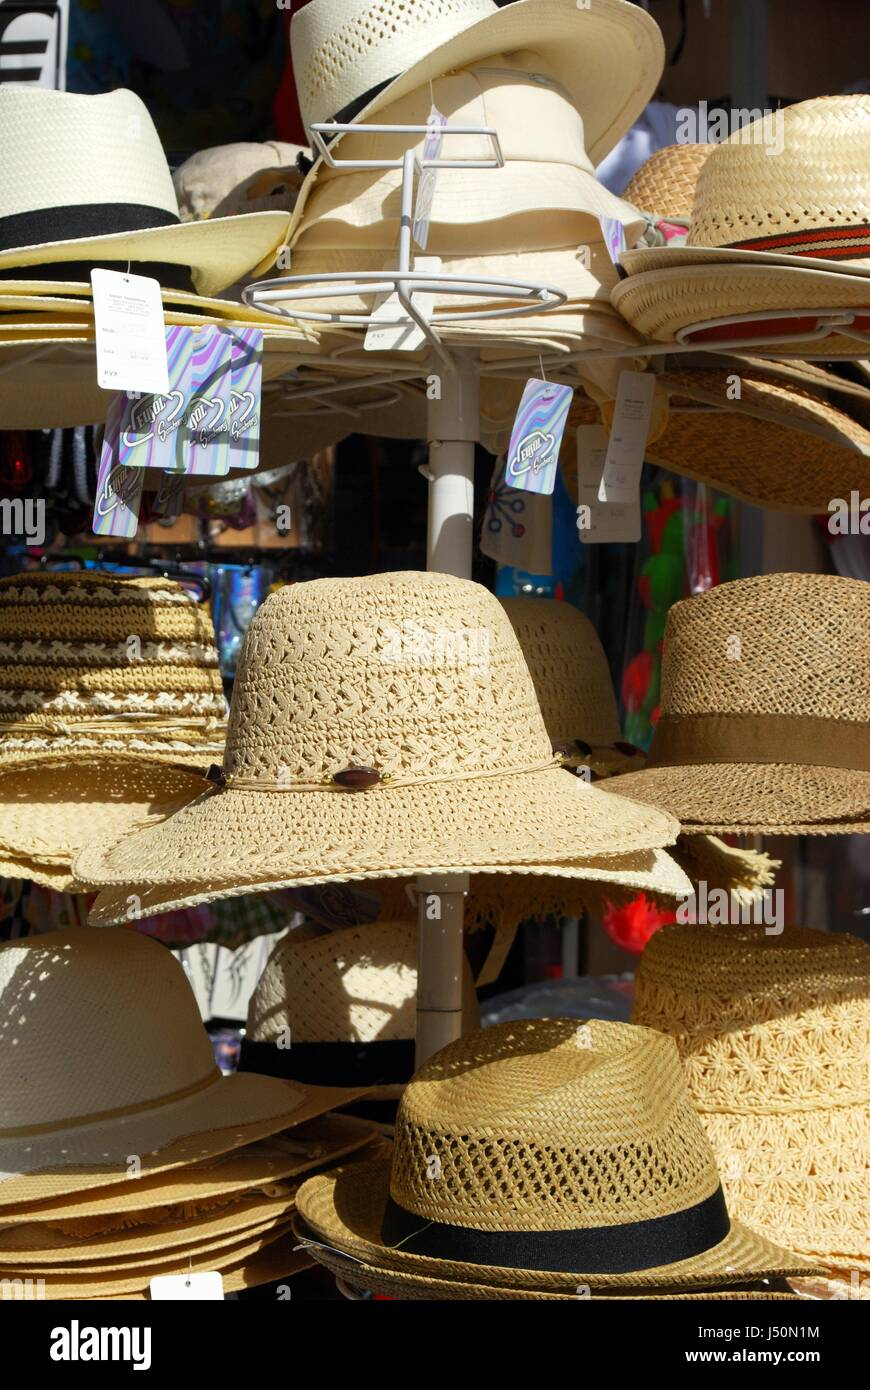 fcaa97ee447208 Straw sun hats for sale at a tourist shop, Torremolinos, Malaga Province,  Andalusia, Spain, Western Europe.